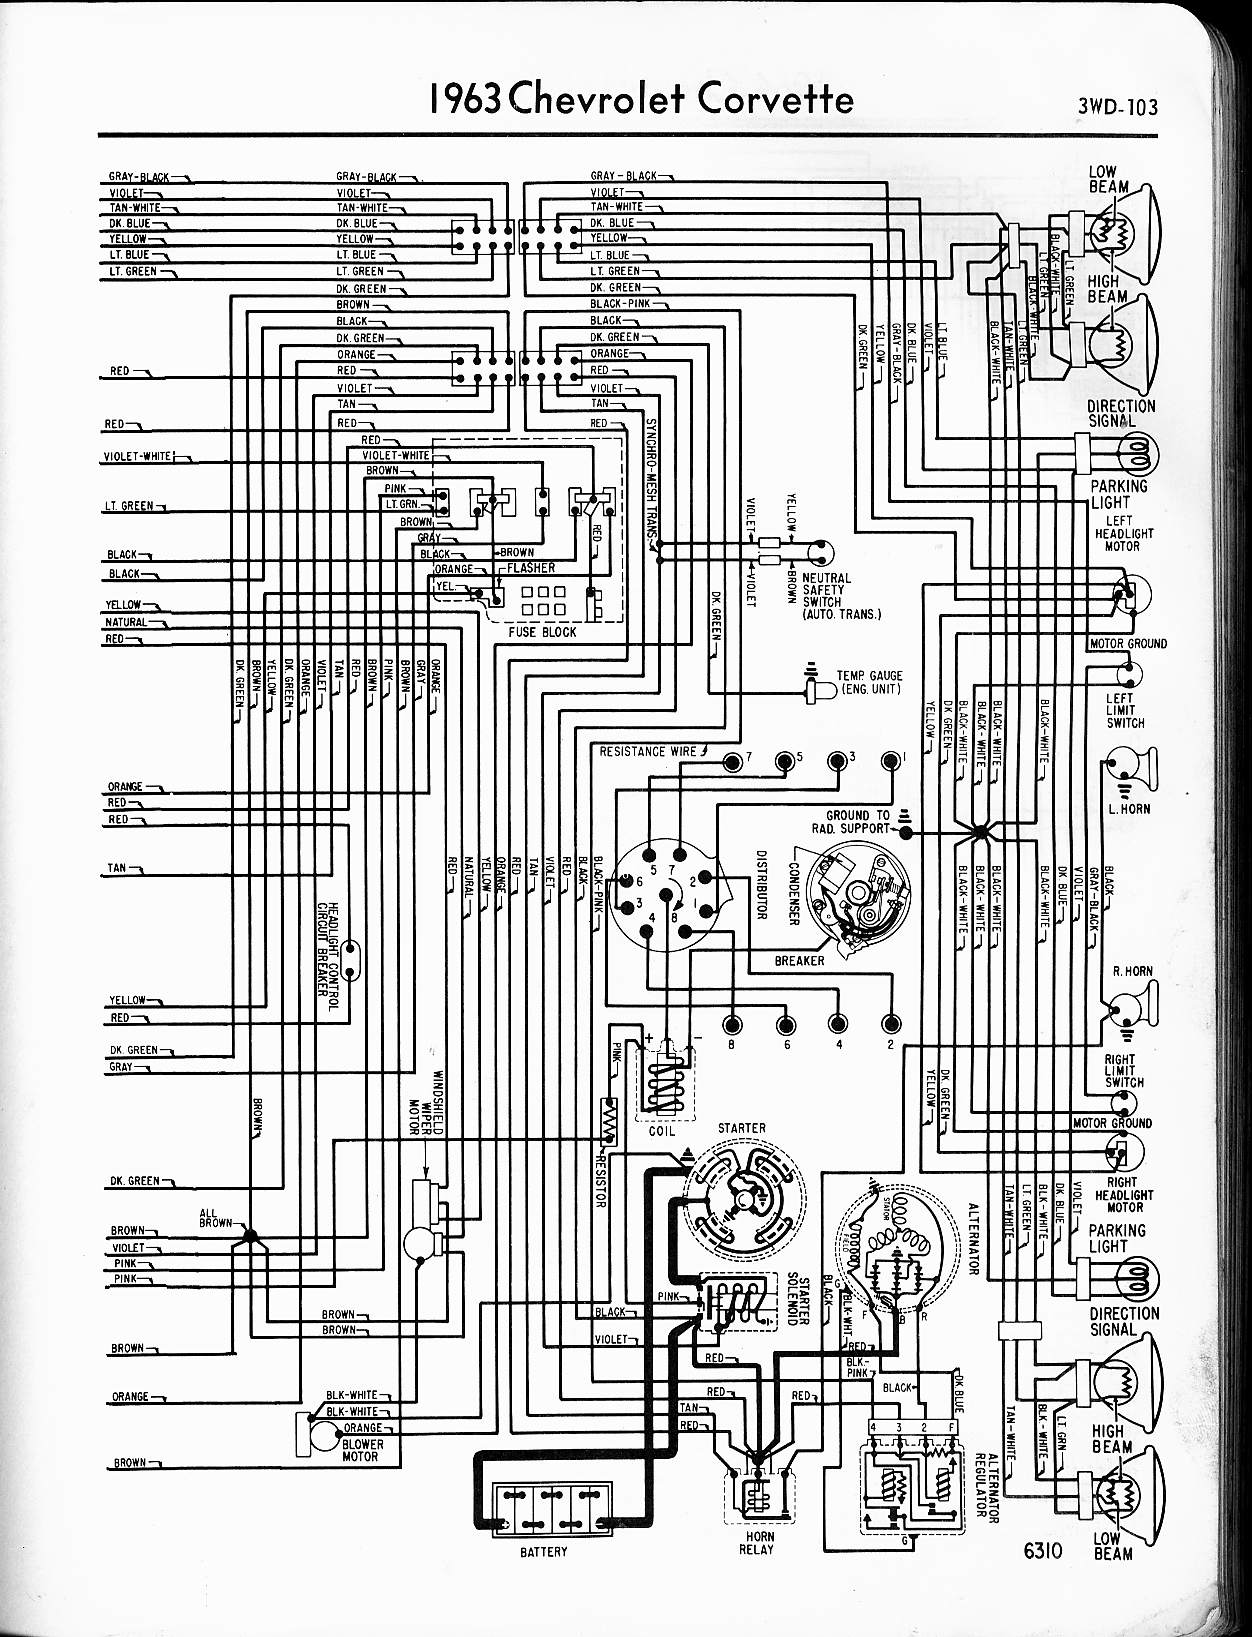 1963 corvette wiring diagram wiring u2022 wiring diagrams rh boltsoft net 1979 C3 Corvette Diagrams 1981 Corvette Fuse Panel Diagram